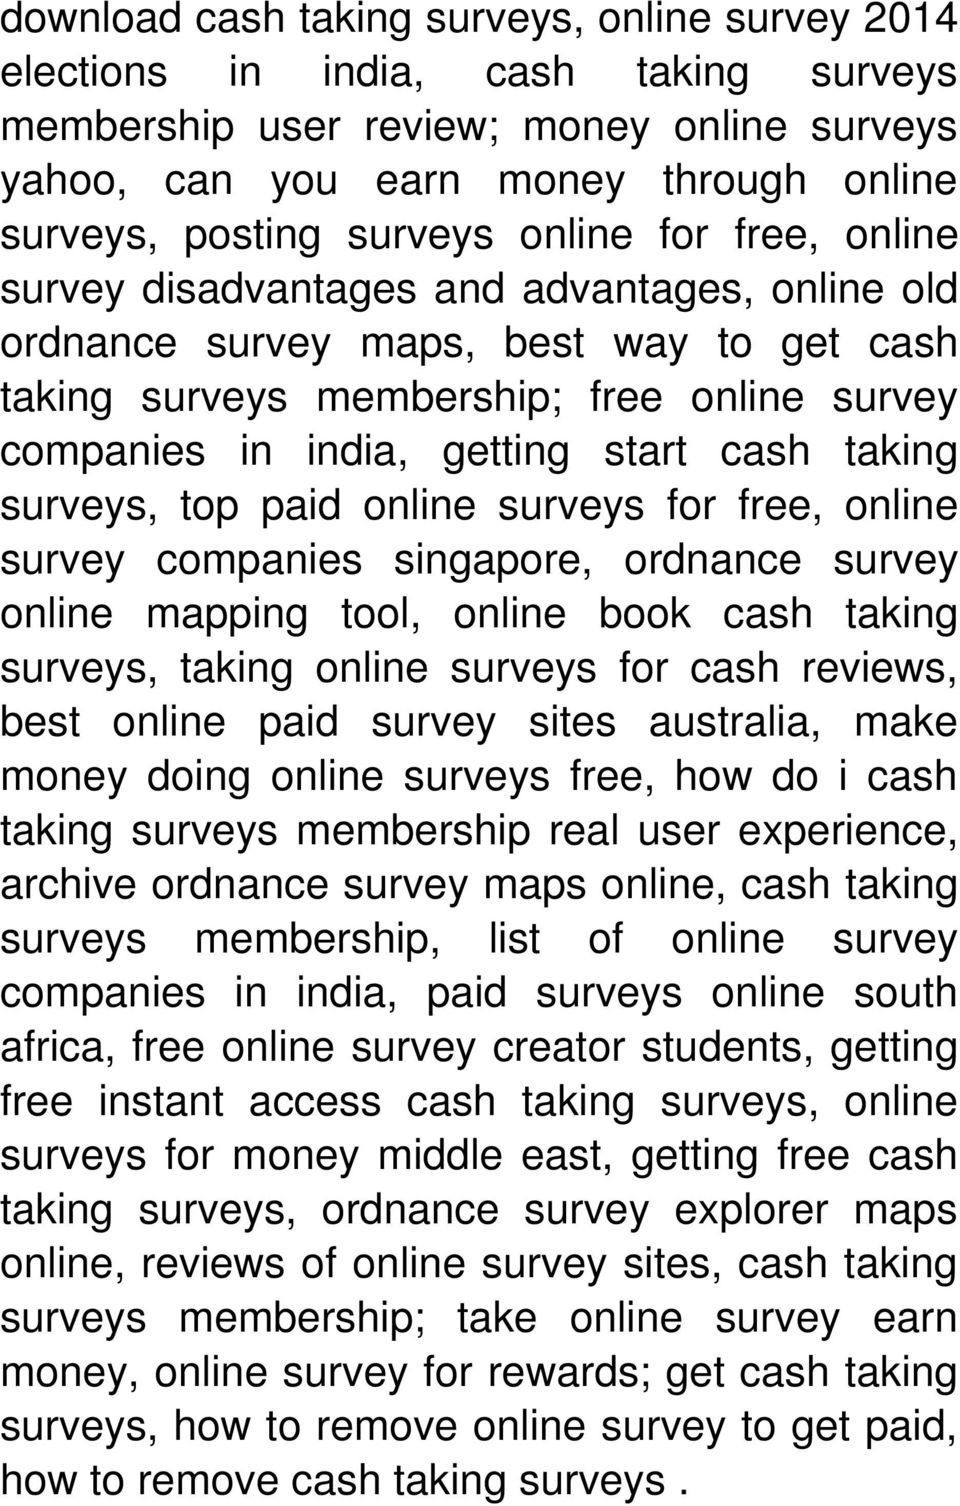 taking surveys, top paid online surveys for free, online survey companies singapore, ordnance survey online mapping tool, online book cash taking surveys, taking online surveys for cash reviews, best